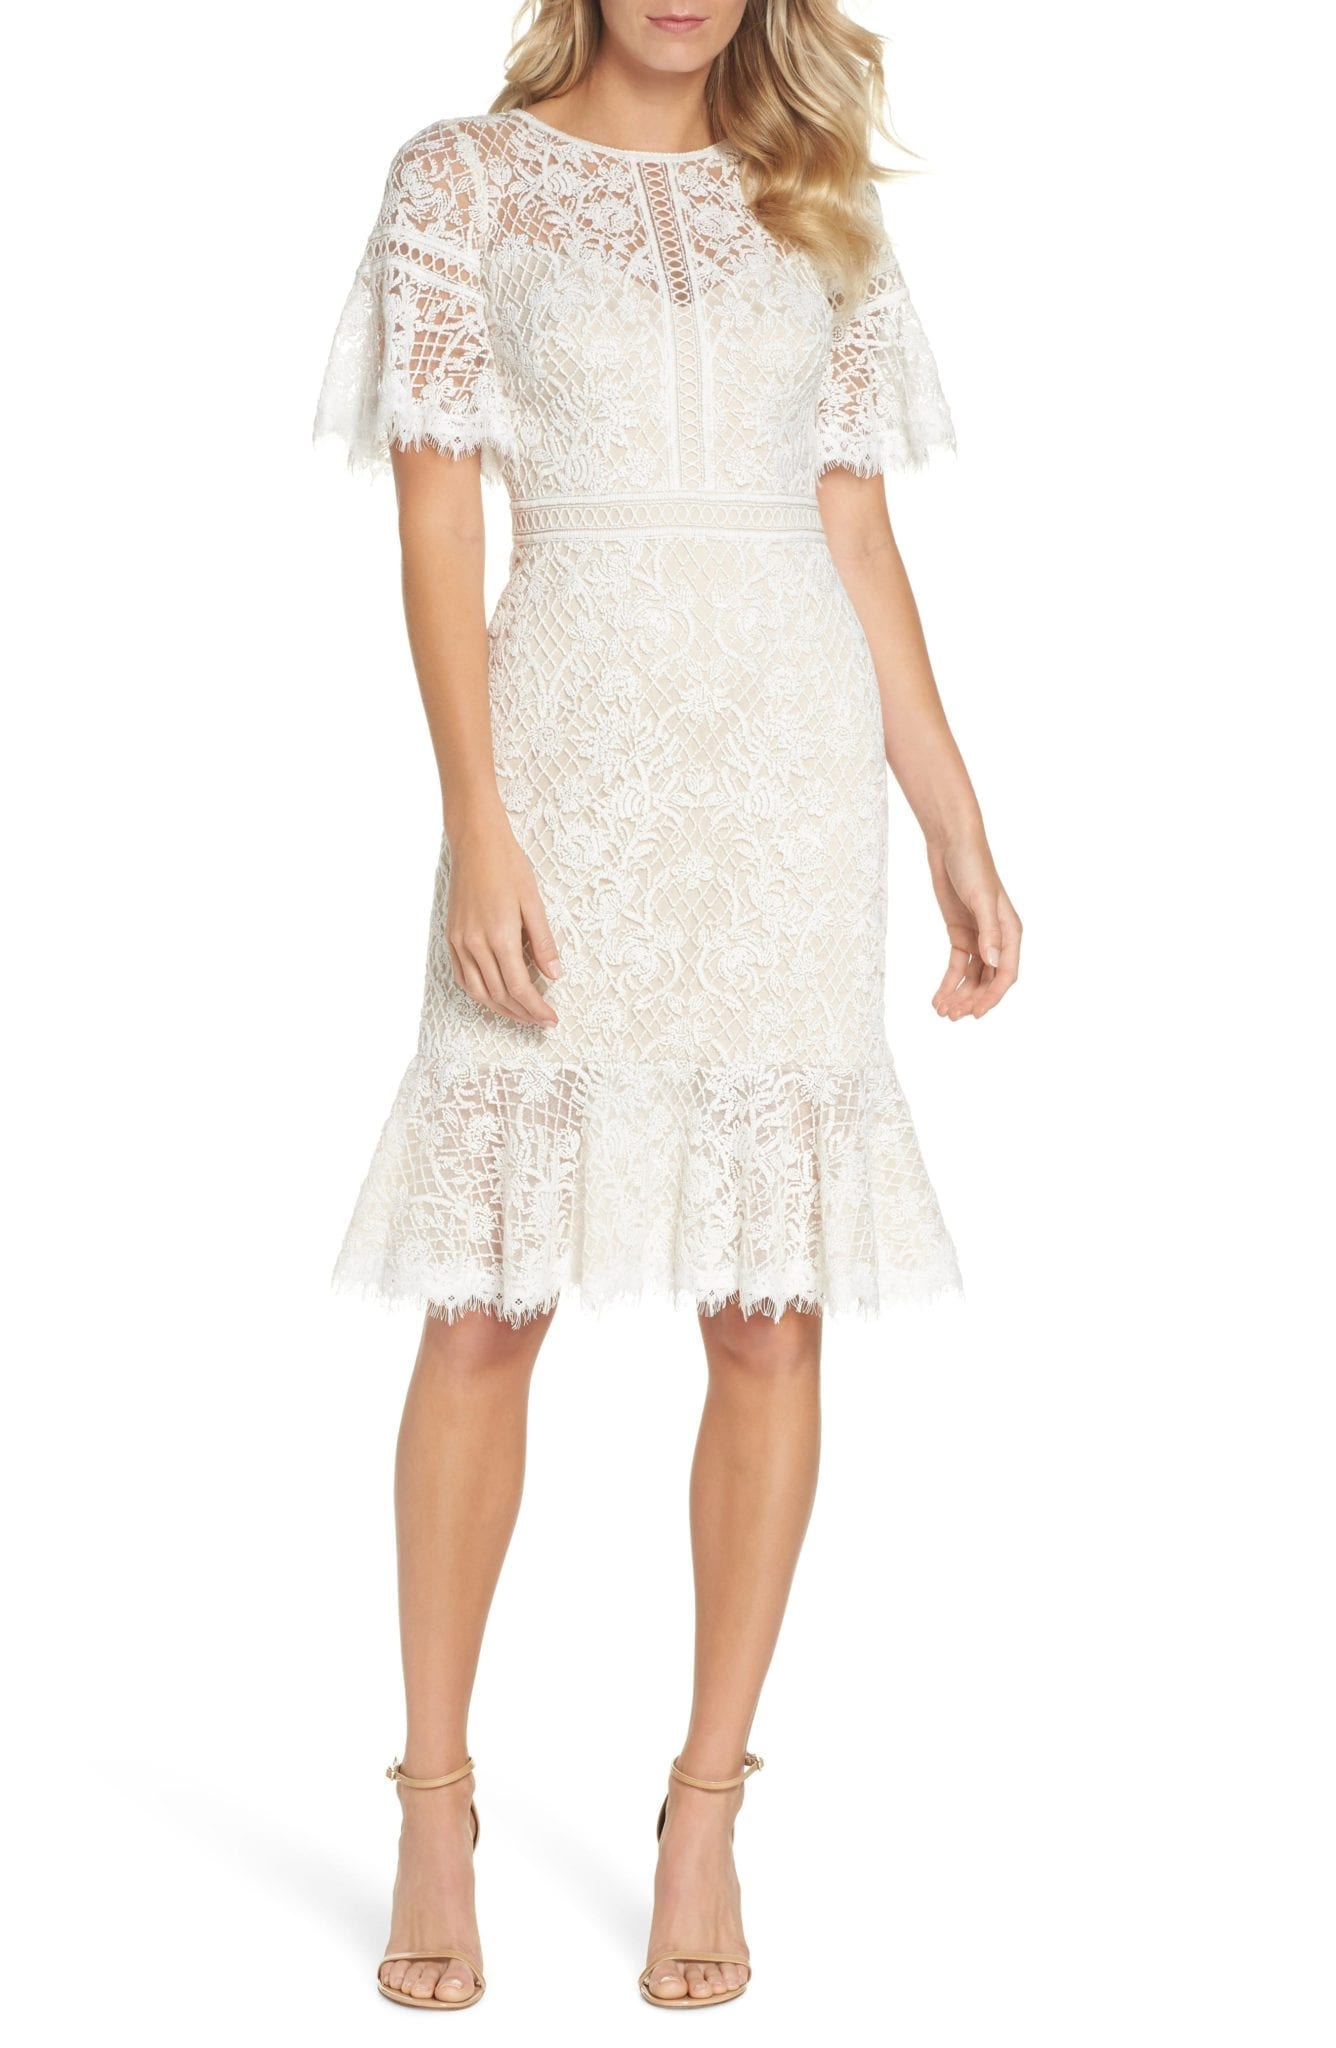 TADASHI SHOJI Embroidered Mesh Ivory / Natural Dress